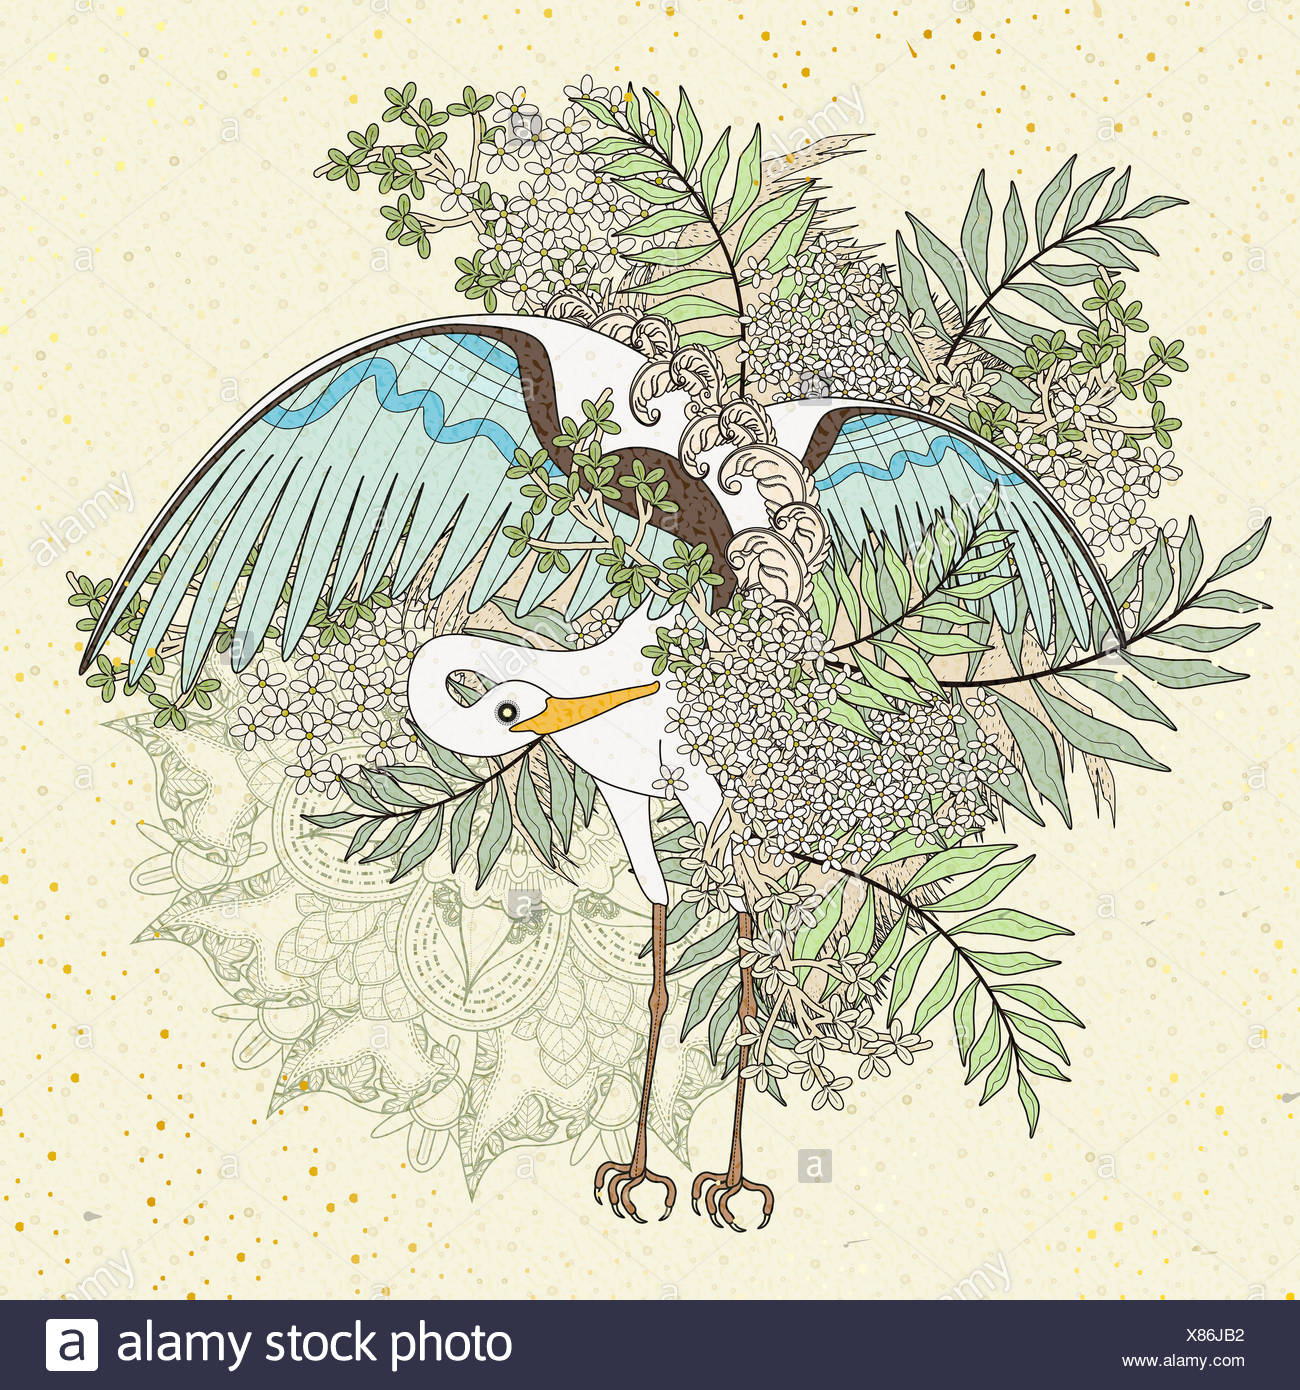 elegant crane coloring page with floral elements in exquisite line ...